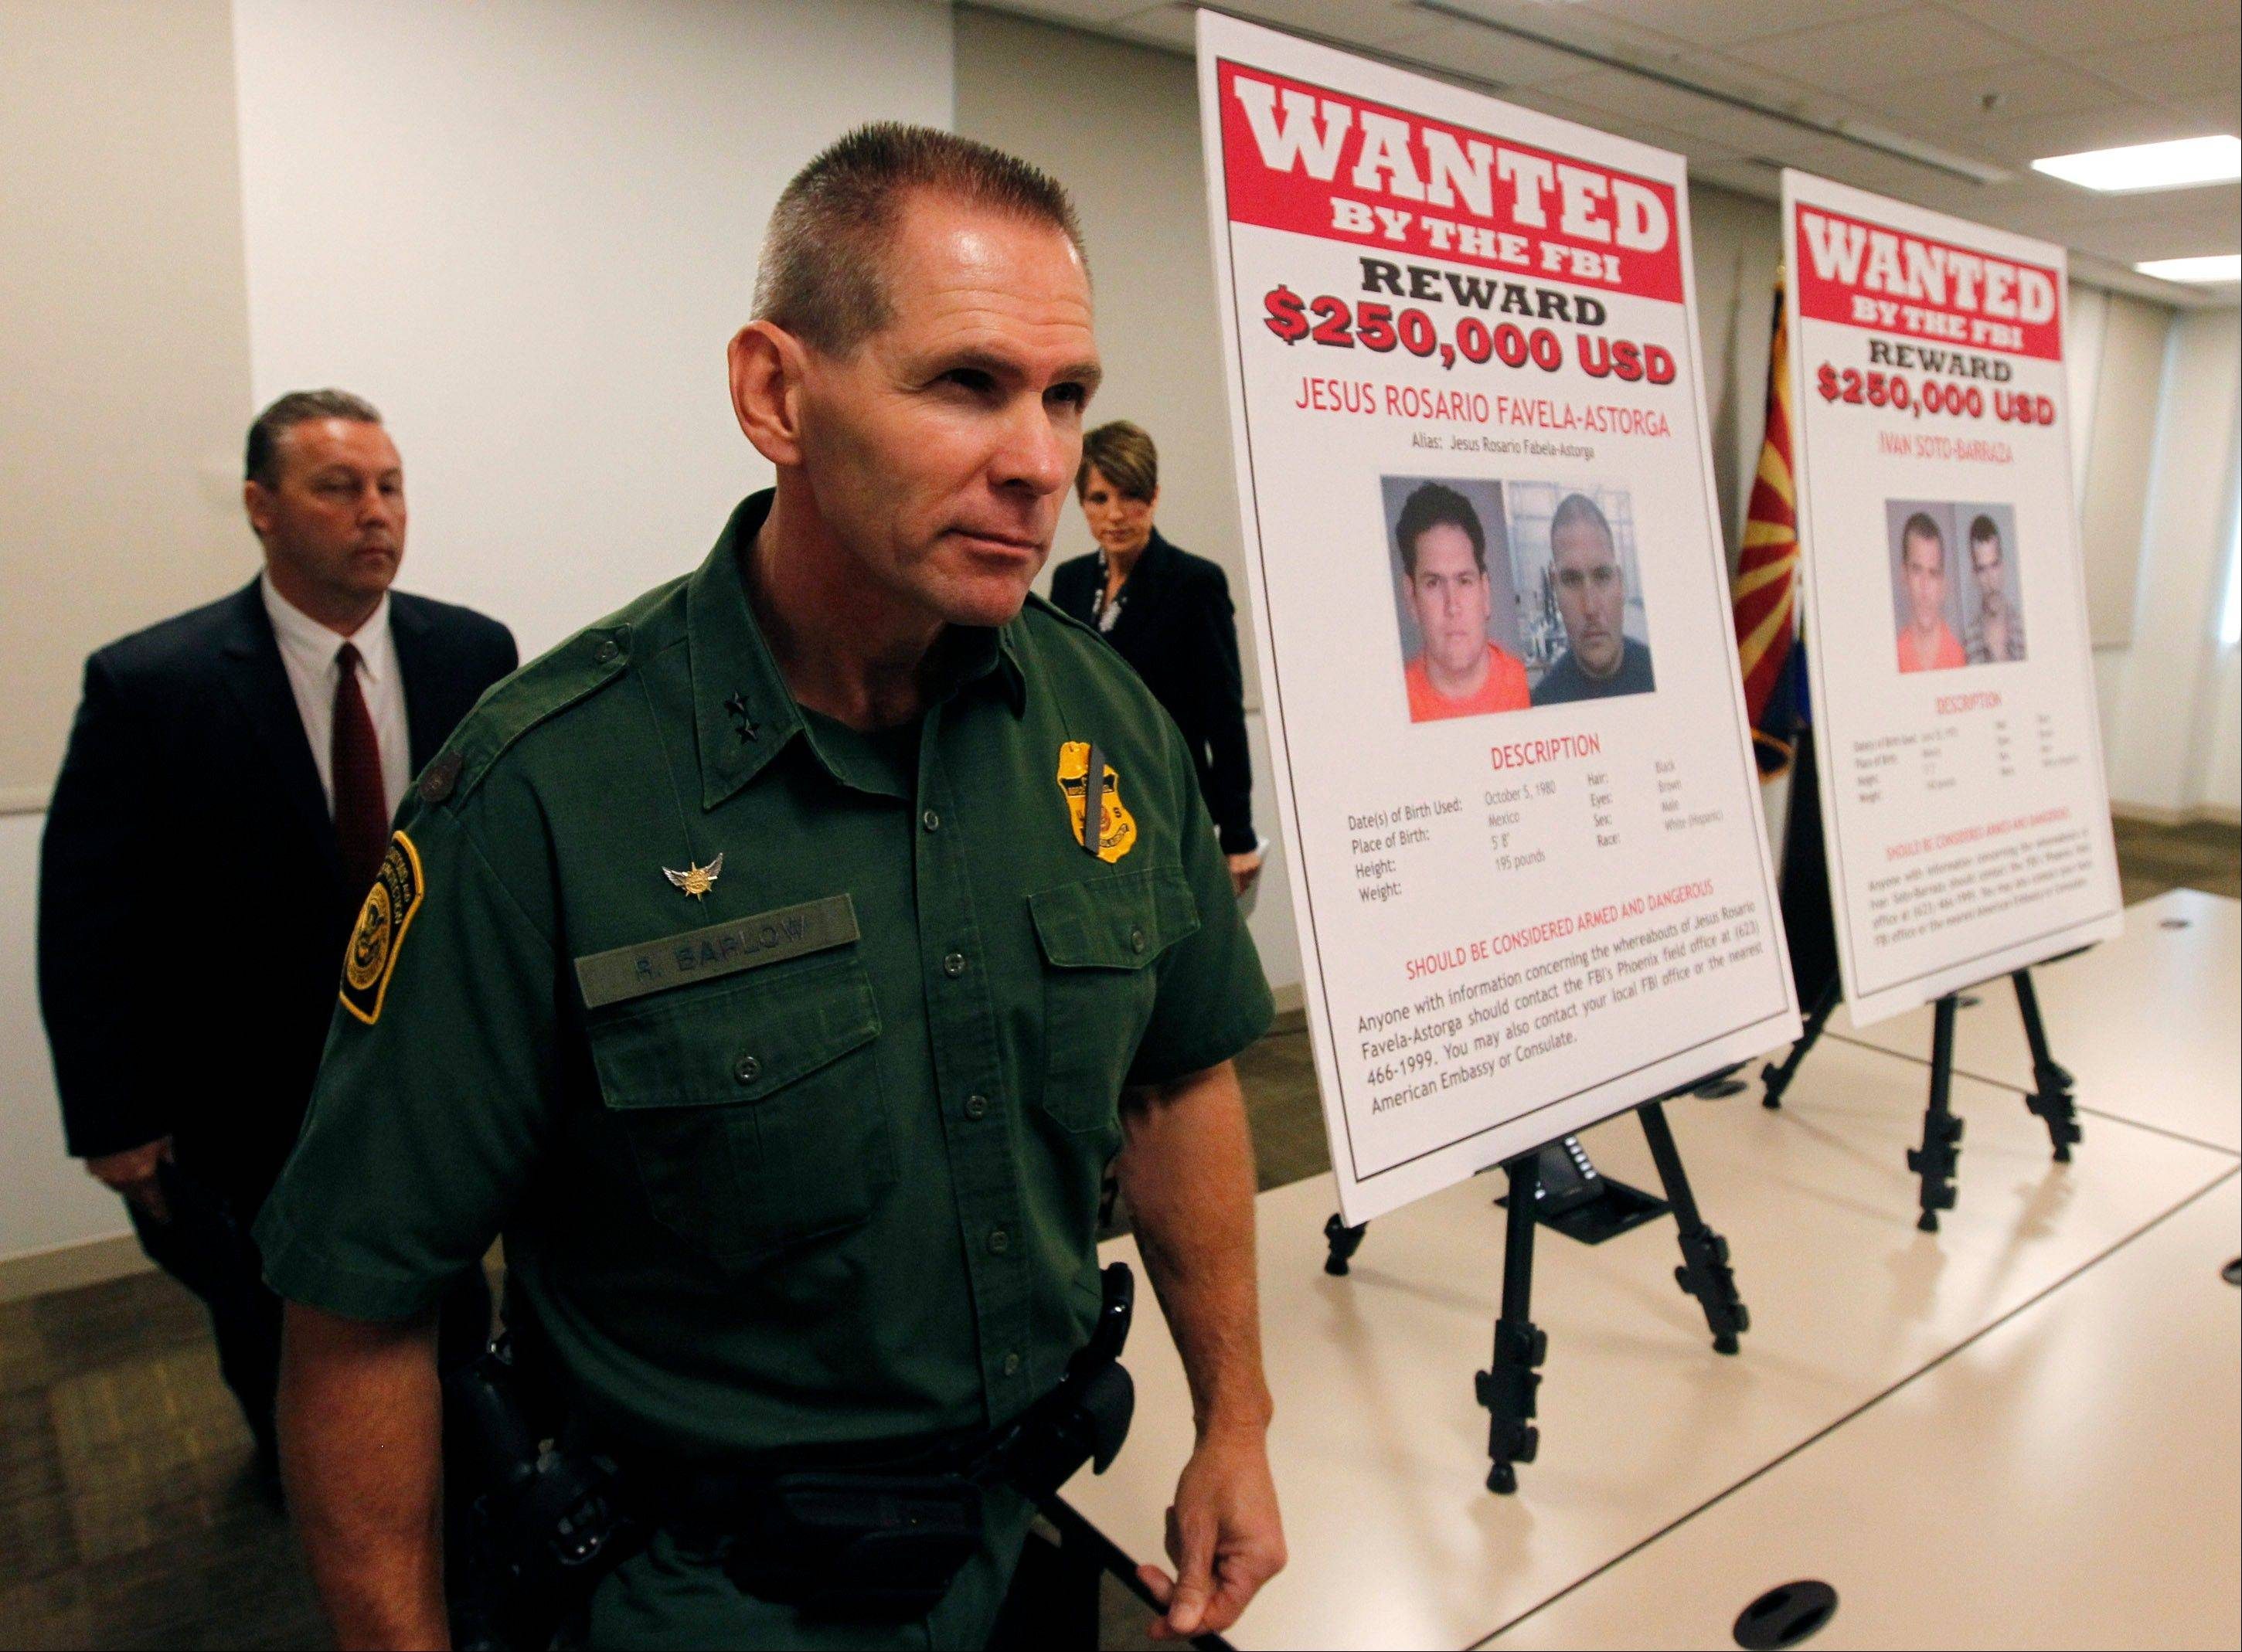 As they walk by wanted posters, Richard Barlow, front, Chief of the Tucson Sector of U.S. Customs and Border Protection Border Patrol, James L. Turgal, Jr., left, FBI Special Agent in Charge, and Laura E. Duffy, United States Attorney Southern District of California, leave a news briefing after it was announced that an indictment on five suspects related to the death of U.S. Border Patrol agent Brian Terry Monday.